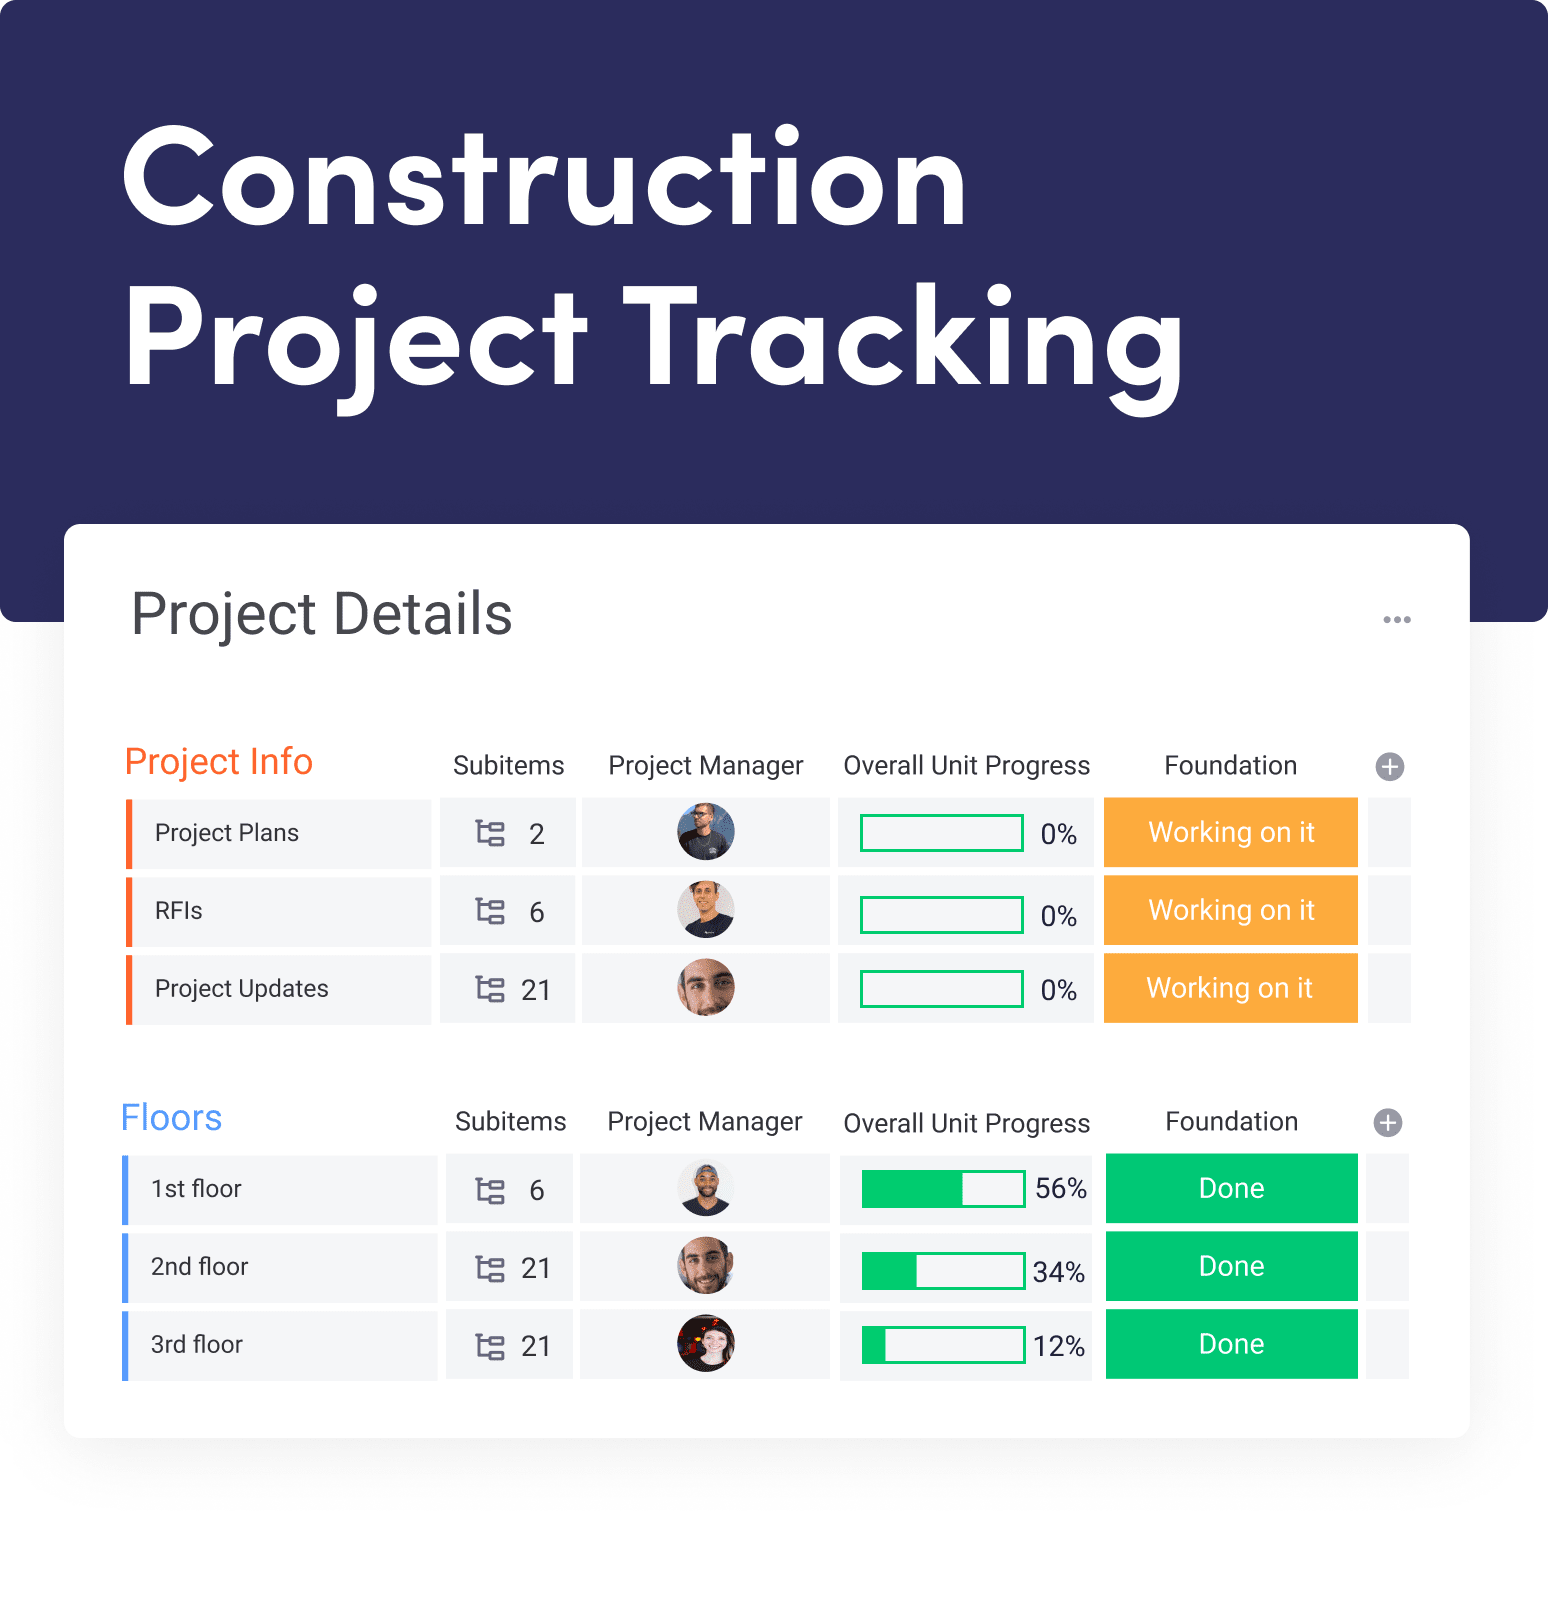 Constructionprojecttracking